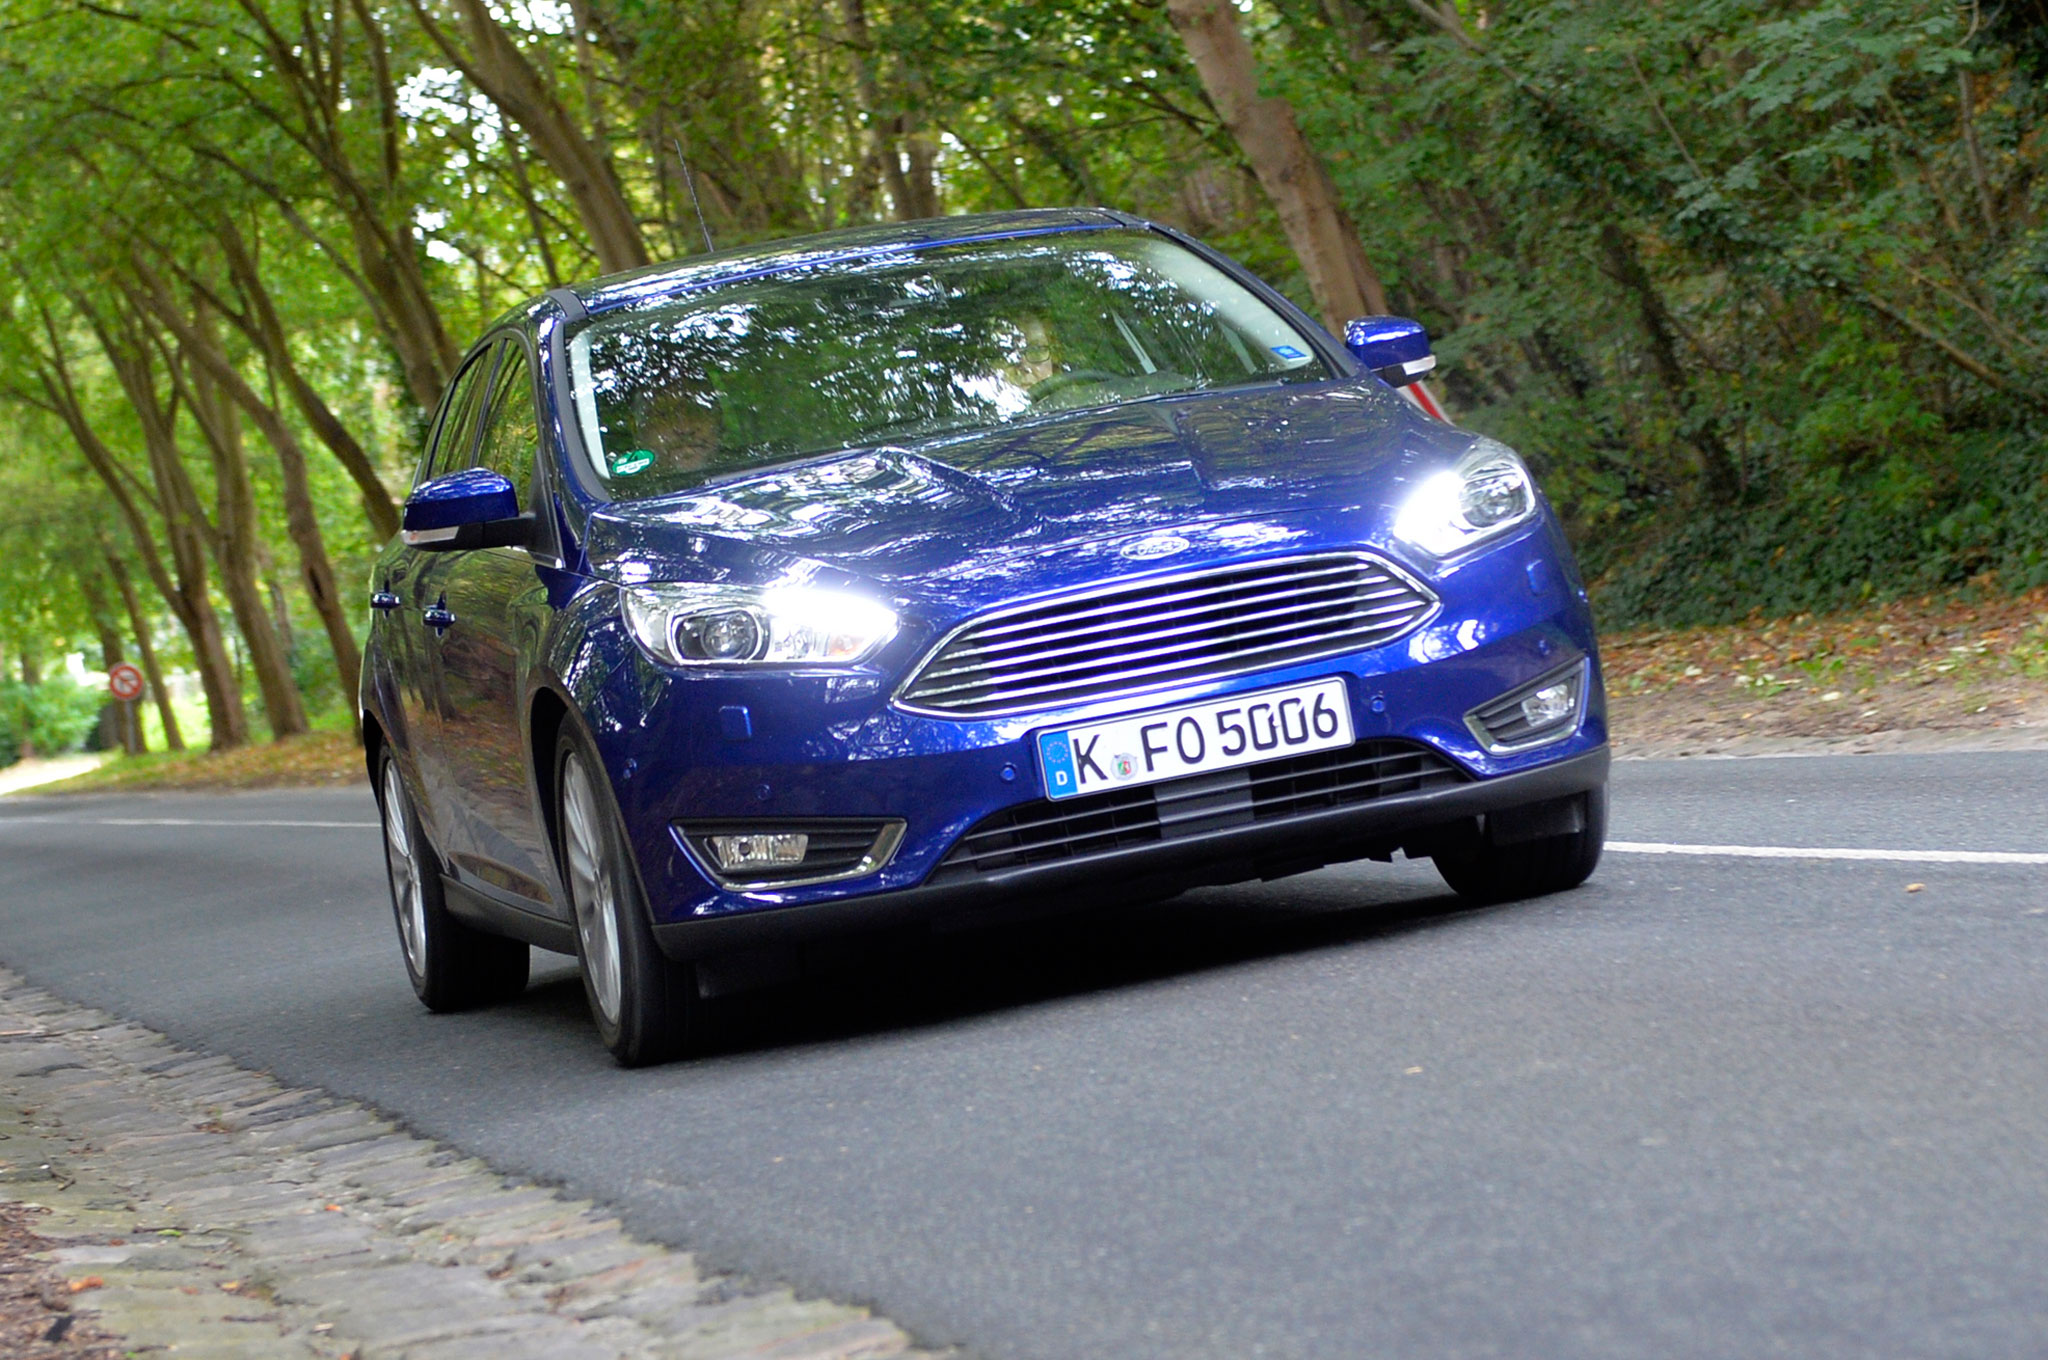 Report: New Ford Focus Due In 2017 - Automobile Magazine